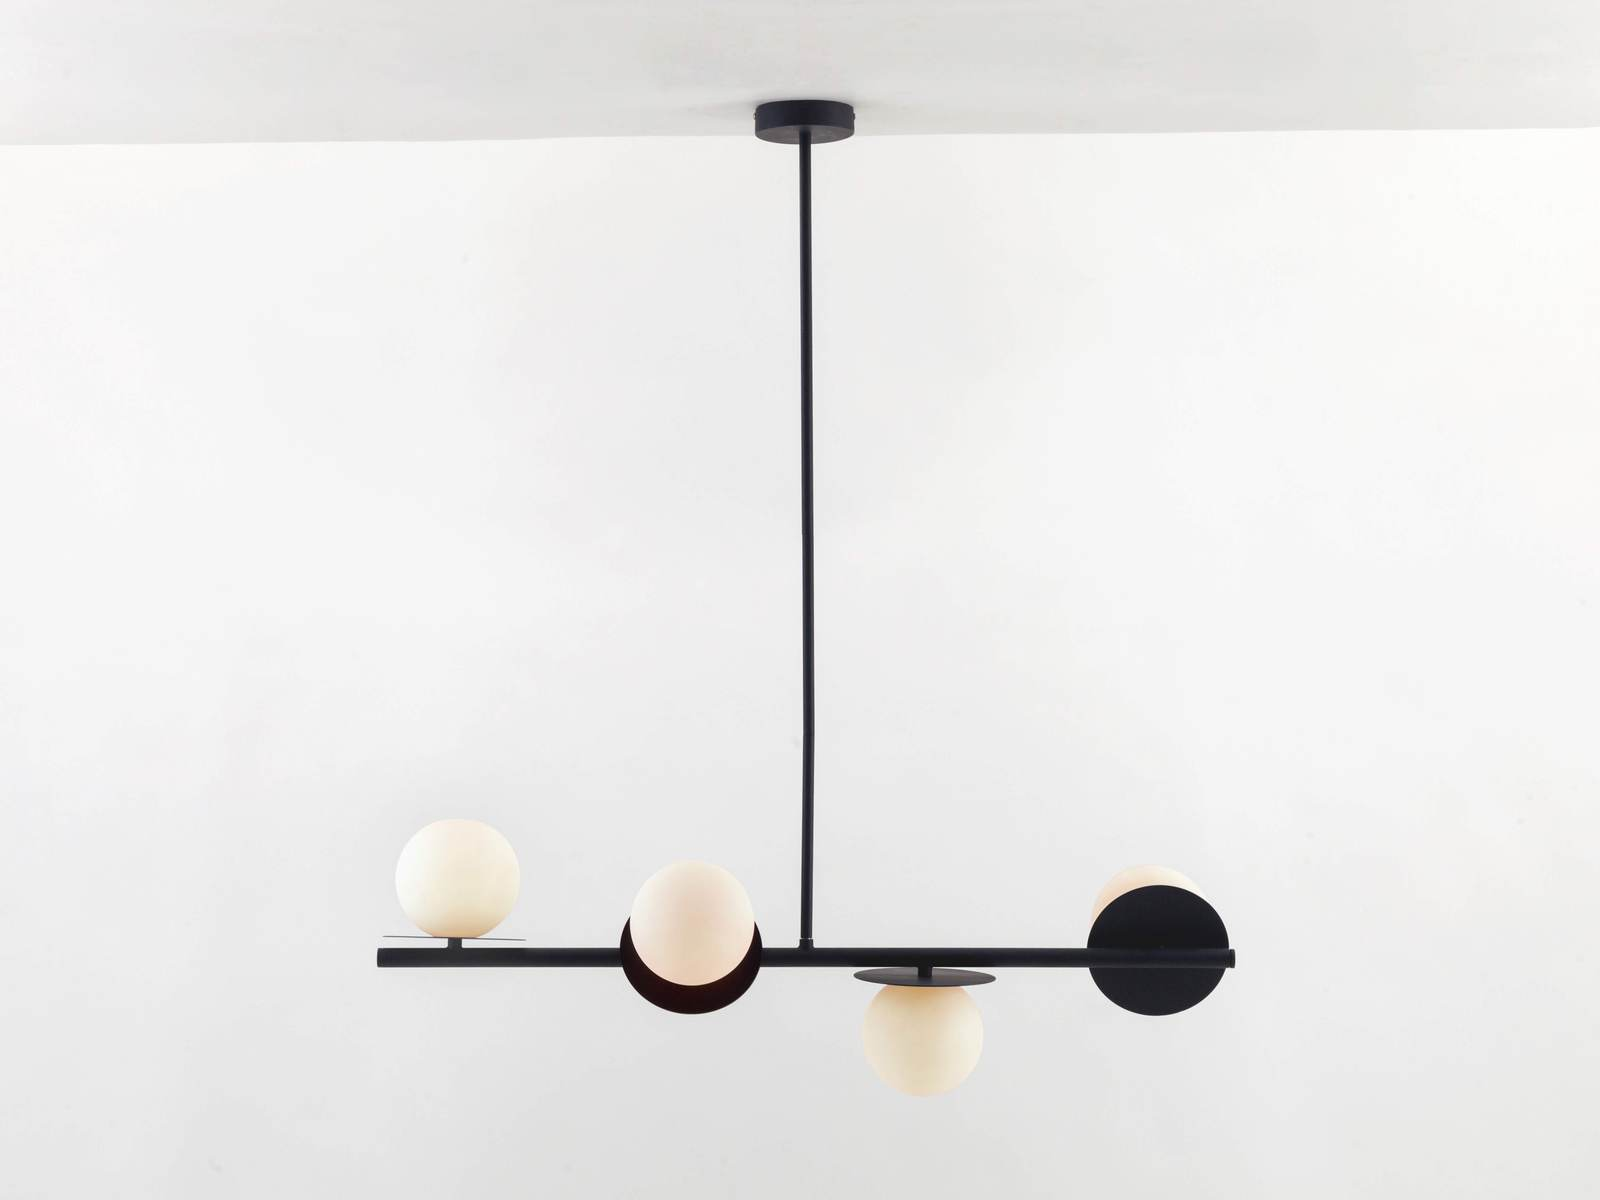 Opal disk ceiling light in charcoal